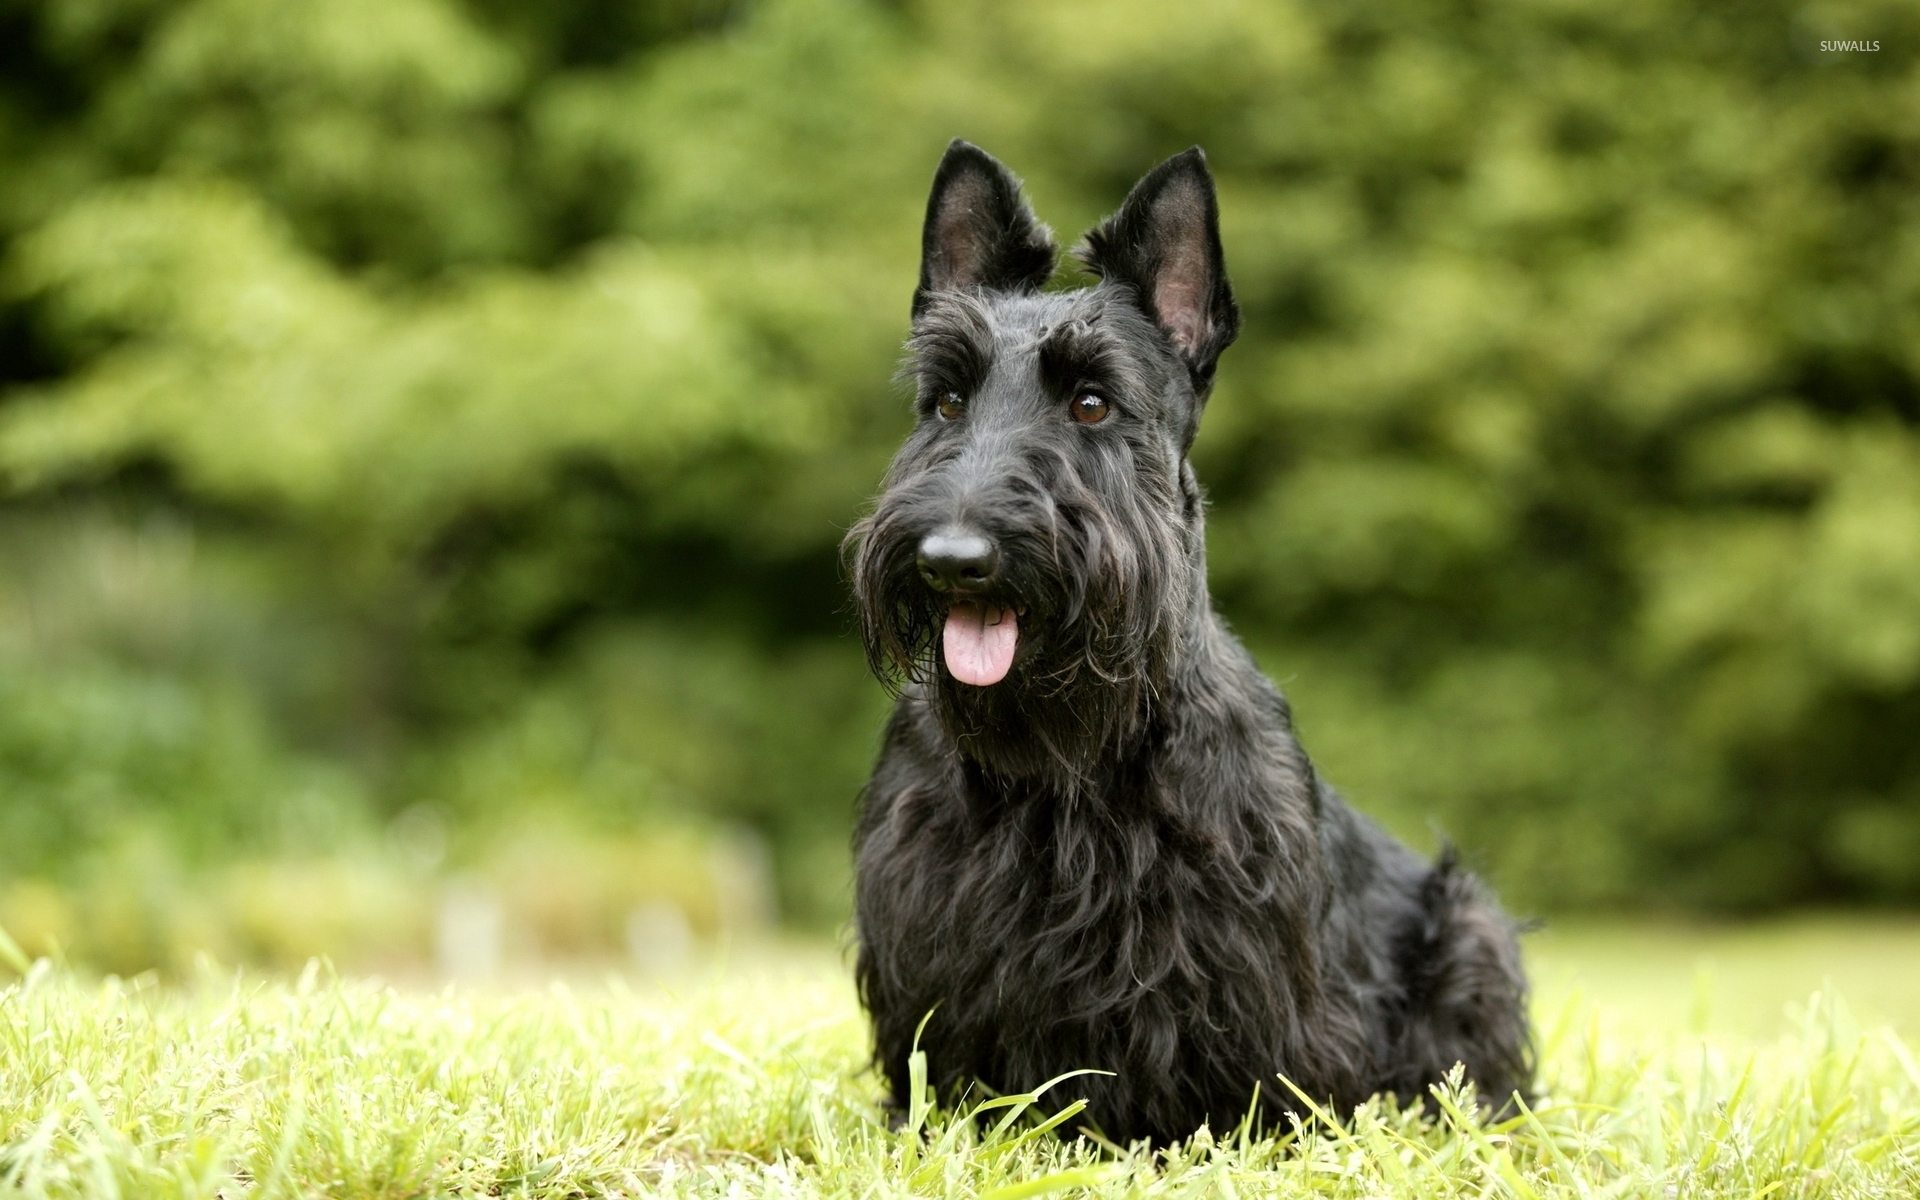 German Girl Wallpaper Scottish Terrier Wallpaper Animal Wallpapers 45674